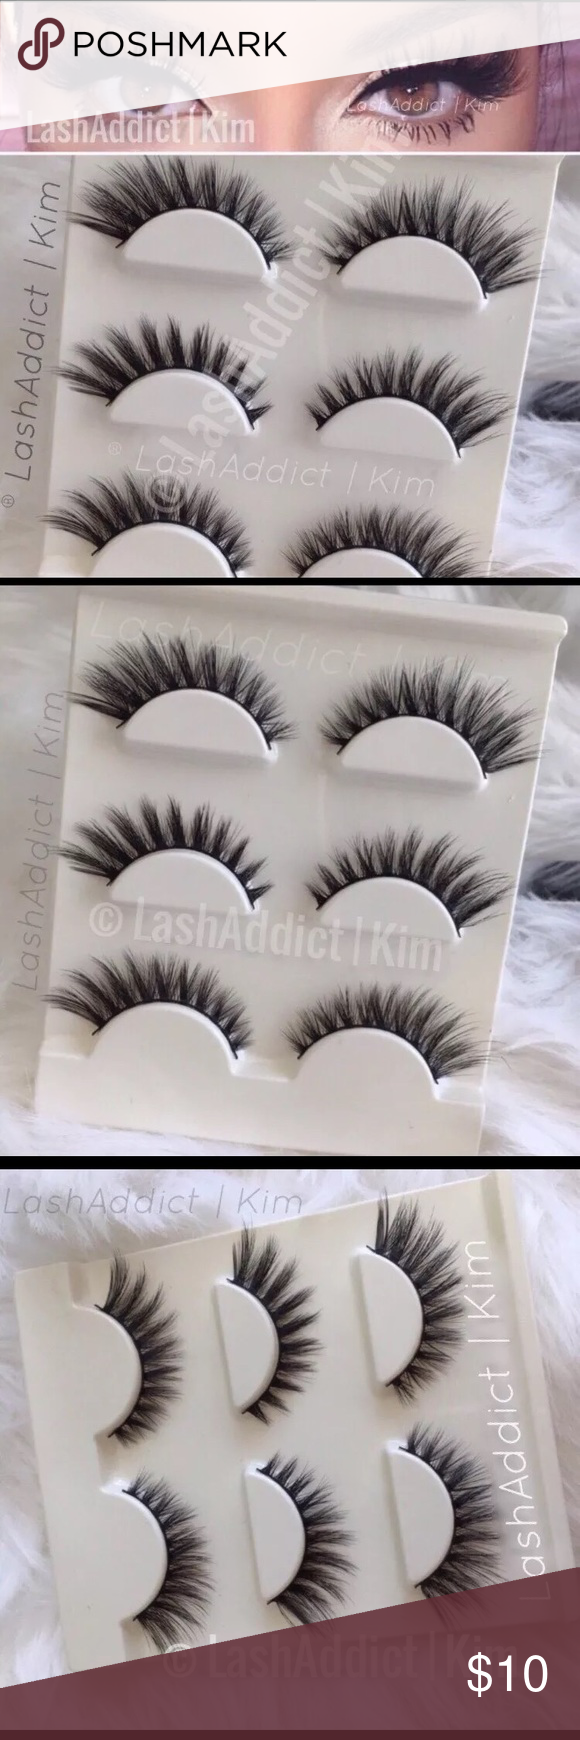 9e4086167e3 Spiky Mink Lashes Eyelashes 3d fur makeup new 3 Pairs Mink Lashes Eyelashes  Last Up To 10-25 Applications With Proper Care Style: Flutter Wsp spiky  Shipping ...